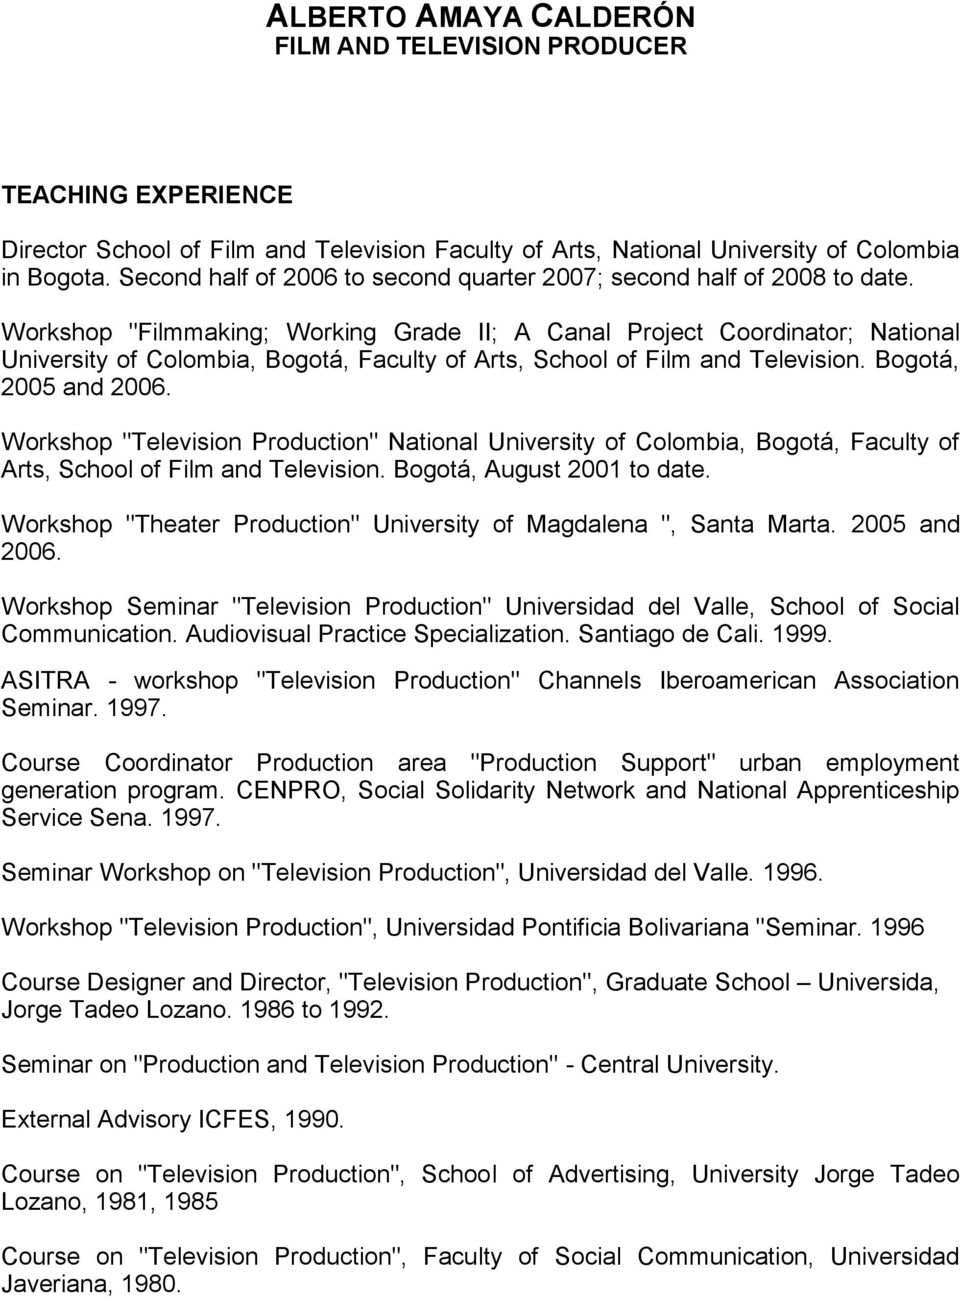 "Workshop ""Television Production"" National University of Colombia, Bogotá, Faculty of Arts, School of Film and Television. Bogotá, August 2001 to date."